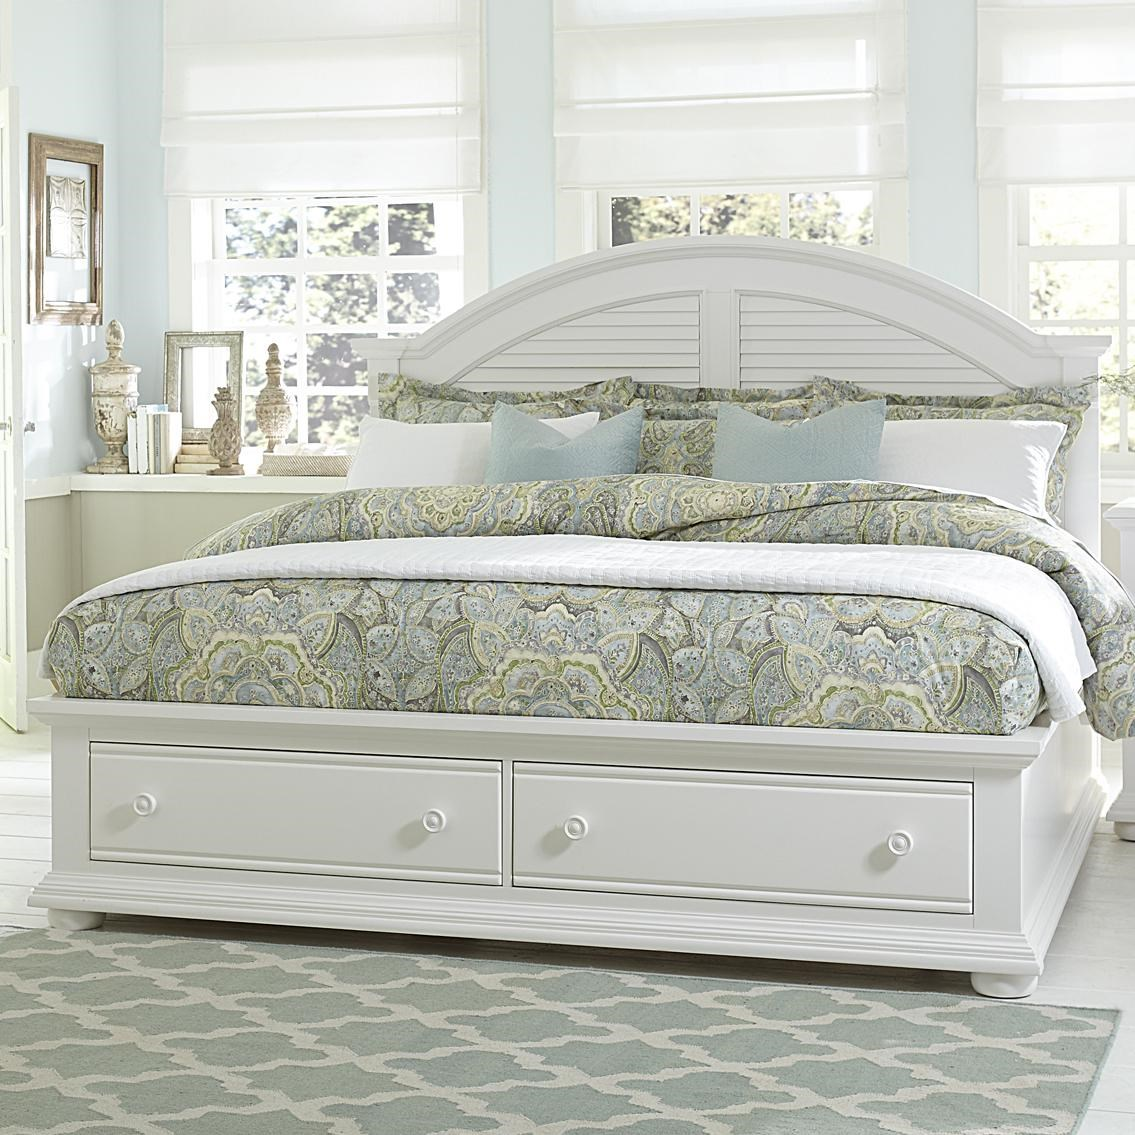 Liberty Furniture Summer House Cottage King Bed With Storage Footboard